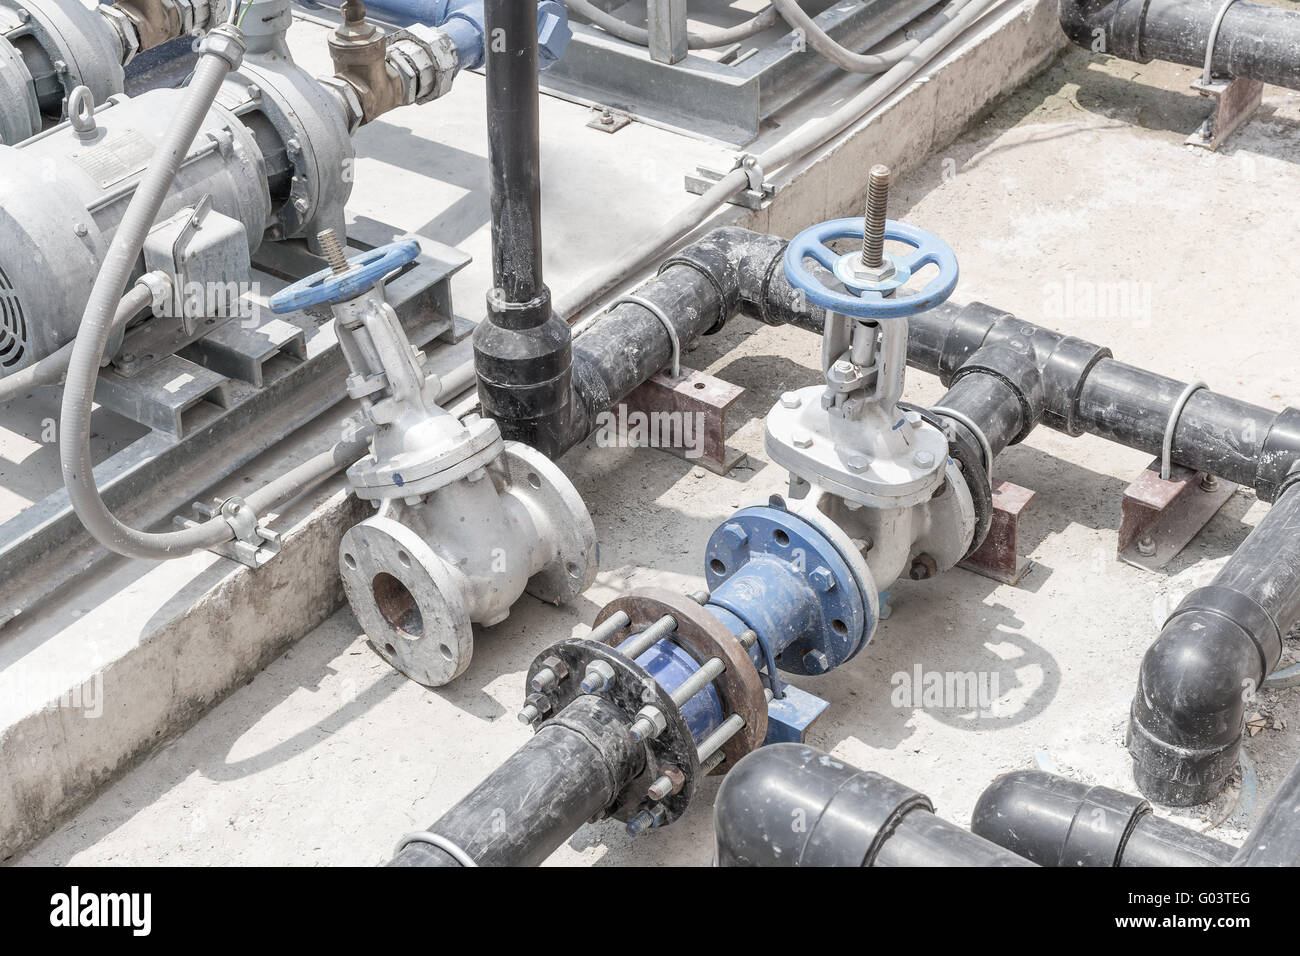 gate valve ,pump ,pipe and equipment waiting for repairing in vintage tone - Stock Image